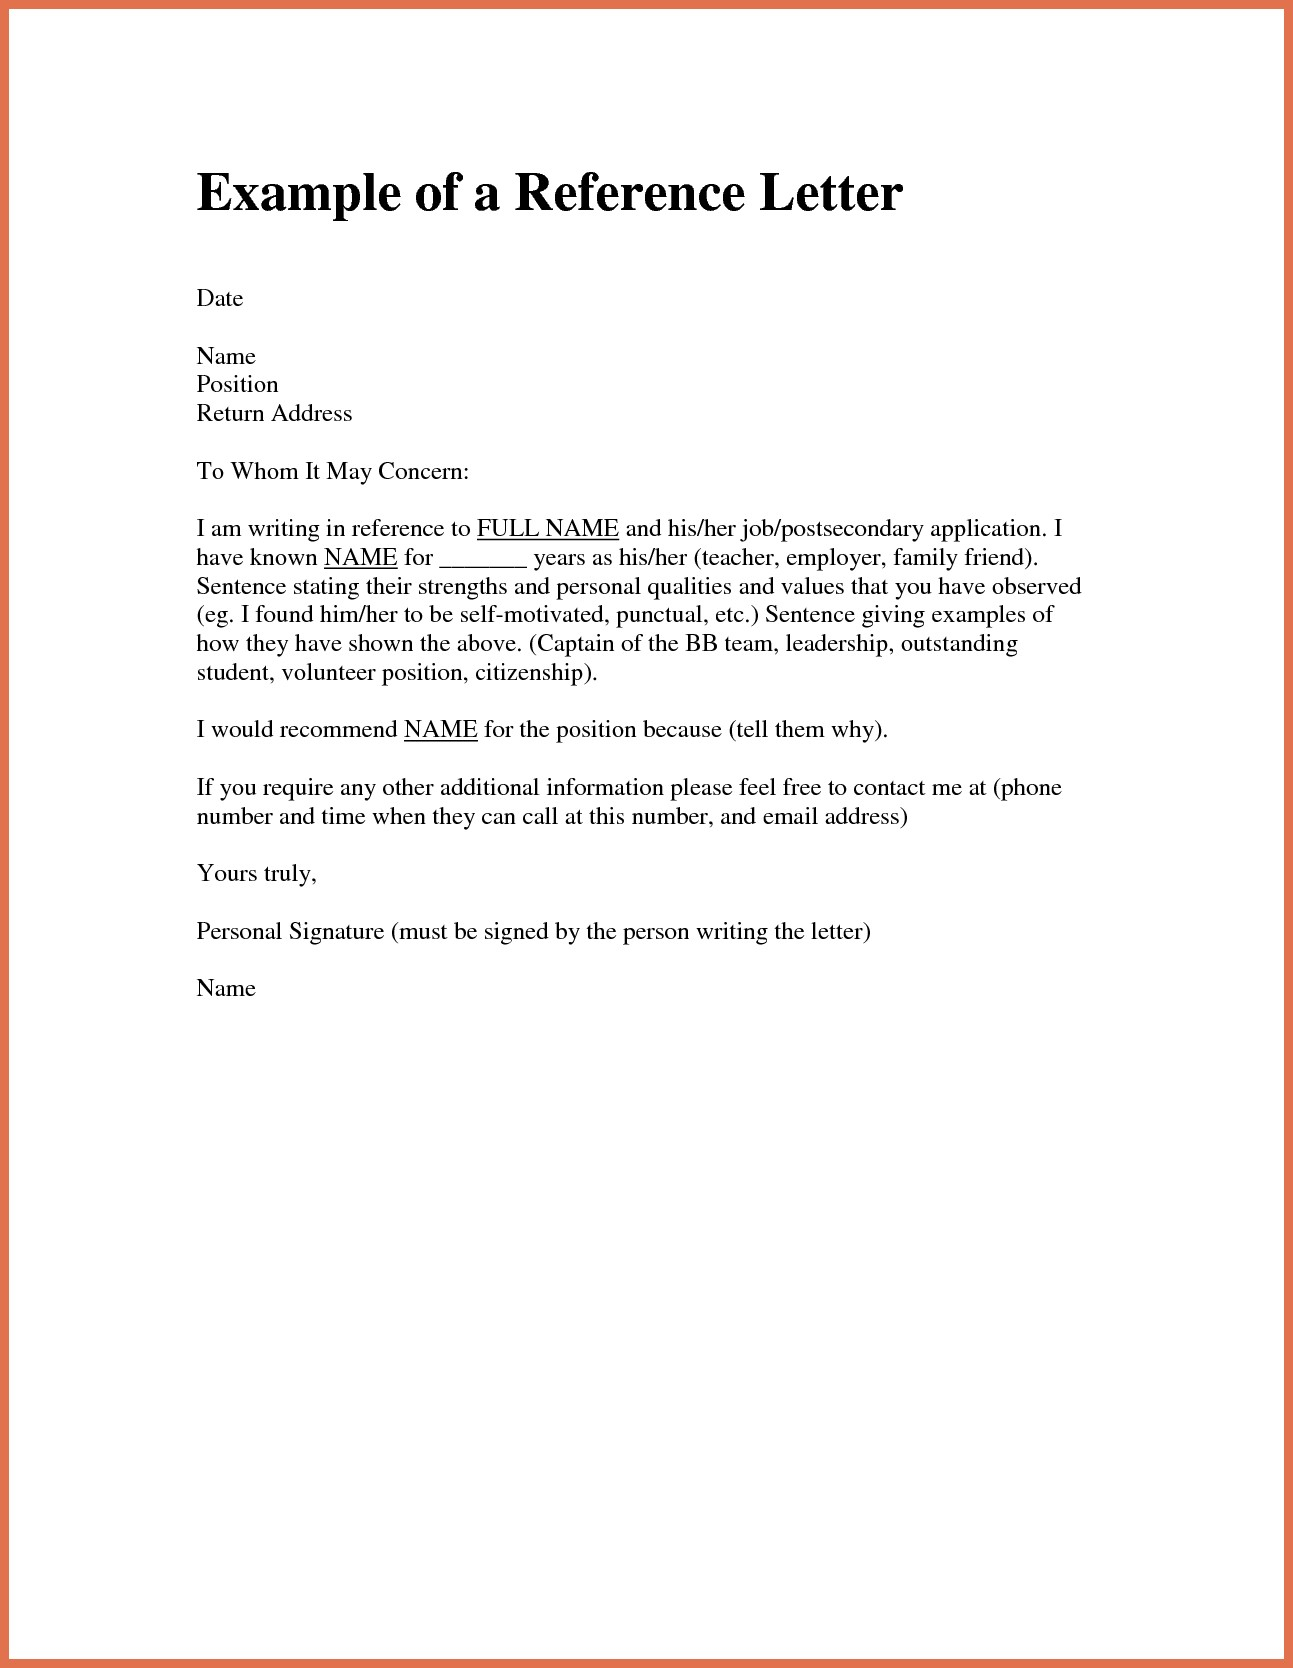 Personal Reference Letter for A Friend Template - Personal Re Mendation Letter for An Employee New Examples